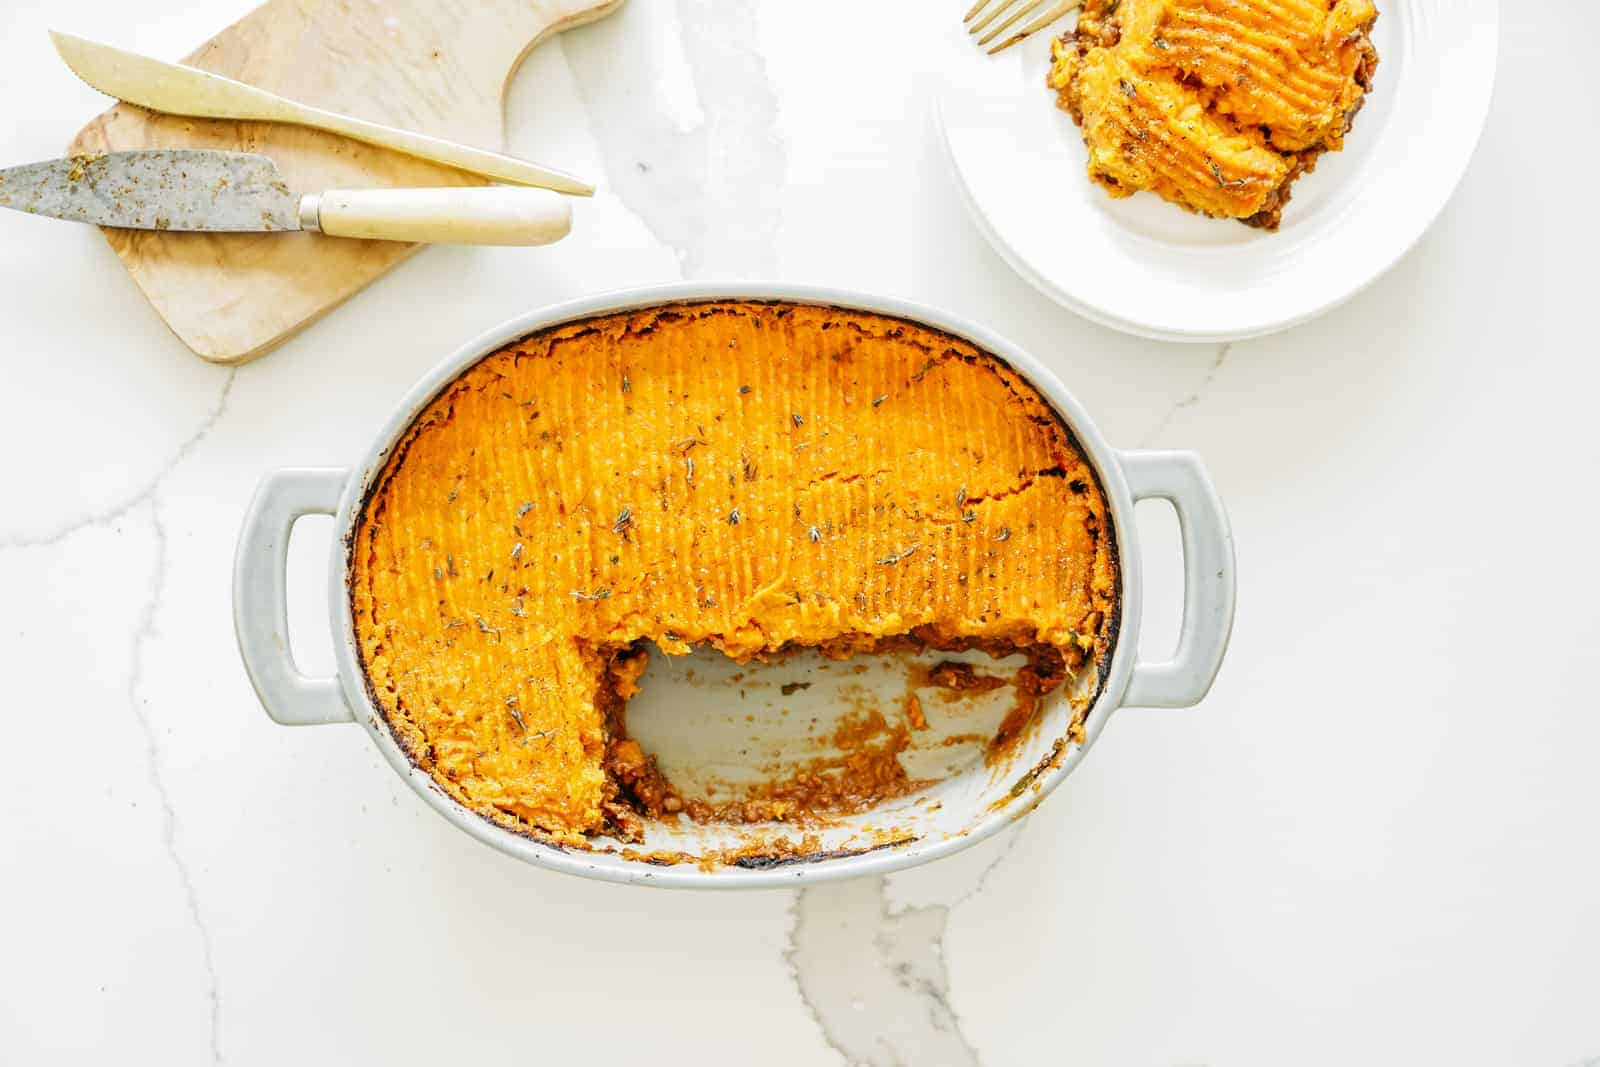 A casserole dish filled with Shepherd's Pie with a slice taken out of it.